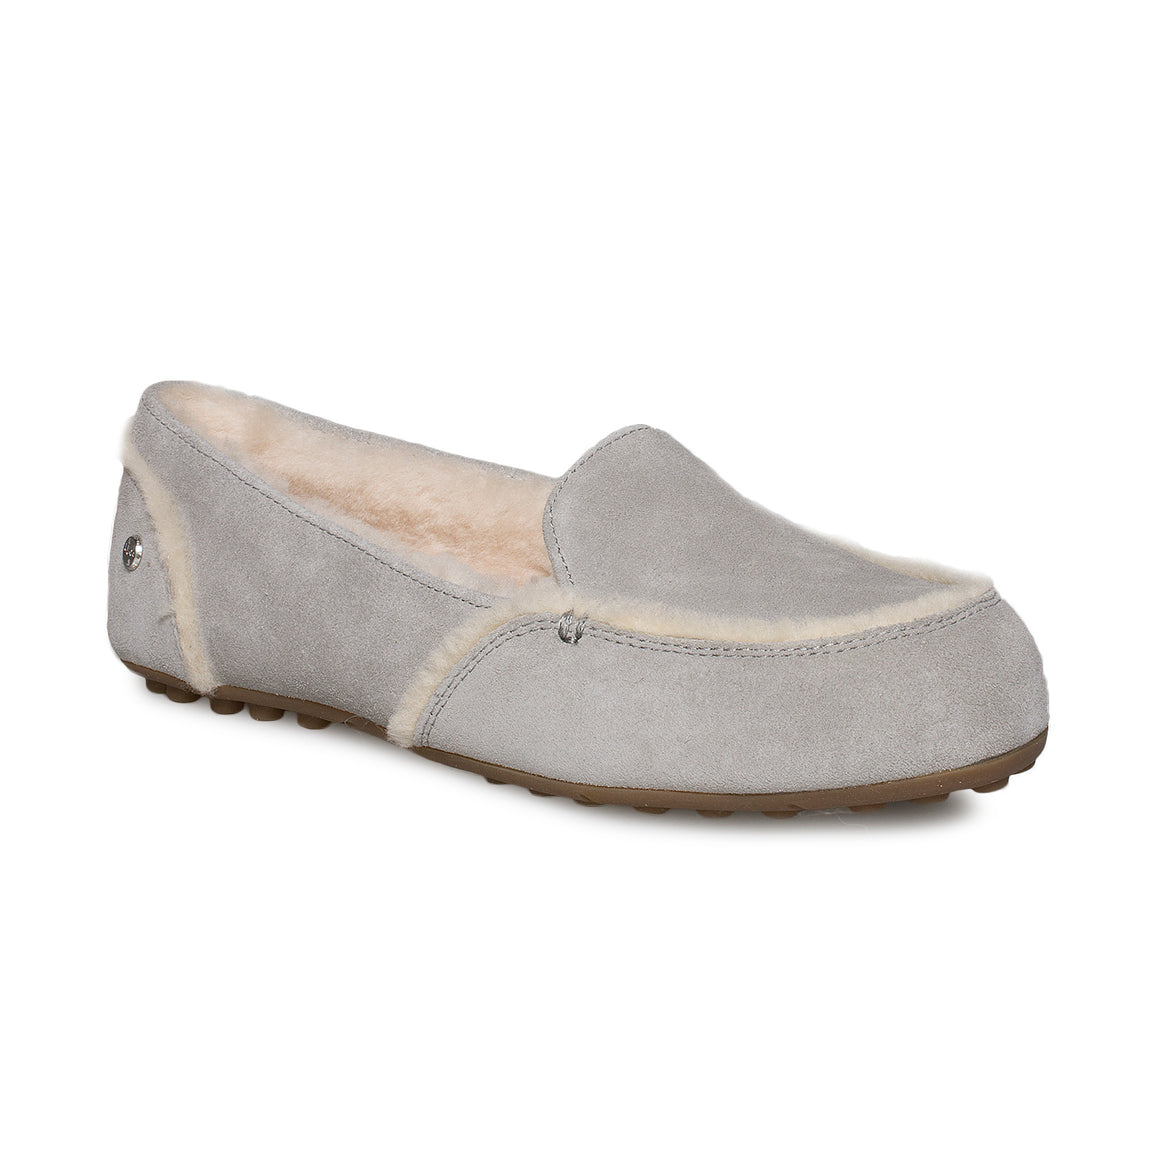 UGG Hailey Seal Slippers - Women's